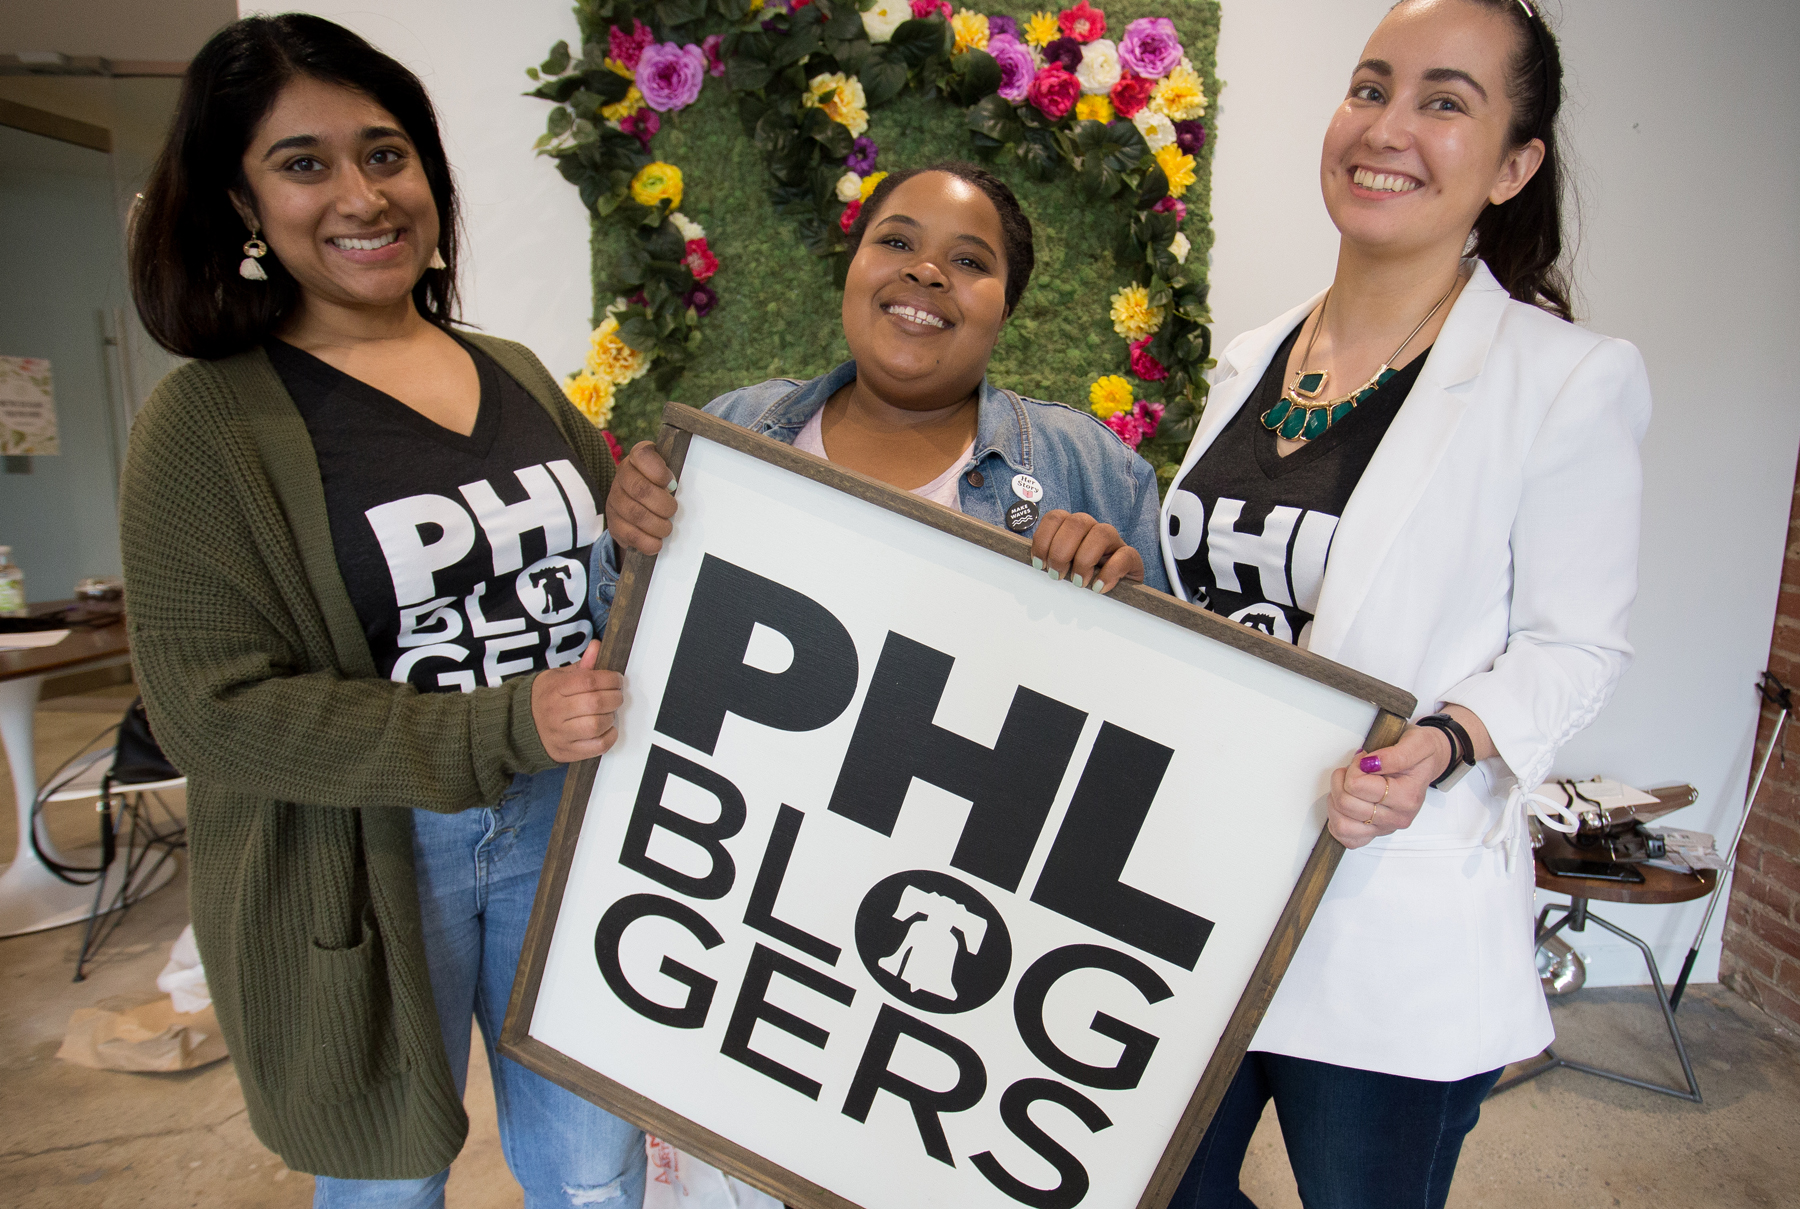 The Blog Connect team members Priyanka (left) and Sarah (right) posing with speaker and workshop lead Amber Burns (middle) showing off our new PHLbloggers sign made by A.R. Workshop in Chestnut Hill in front of our beautiful flower wall made by A.C.Moore. || Photo by  Tim Becker Photography